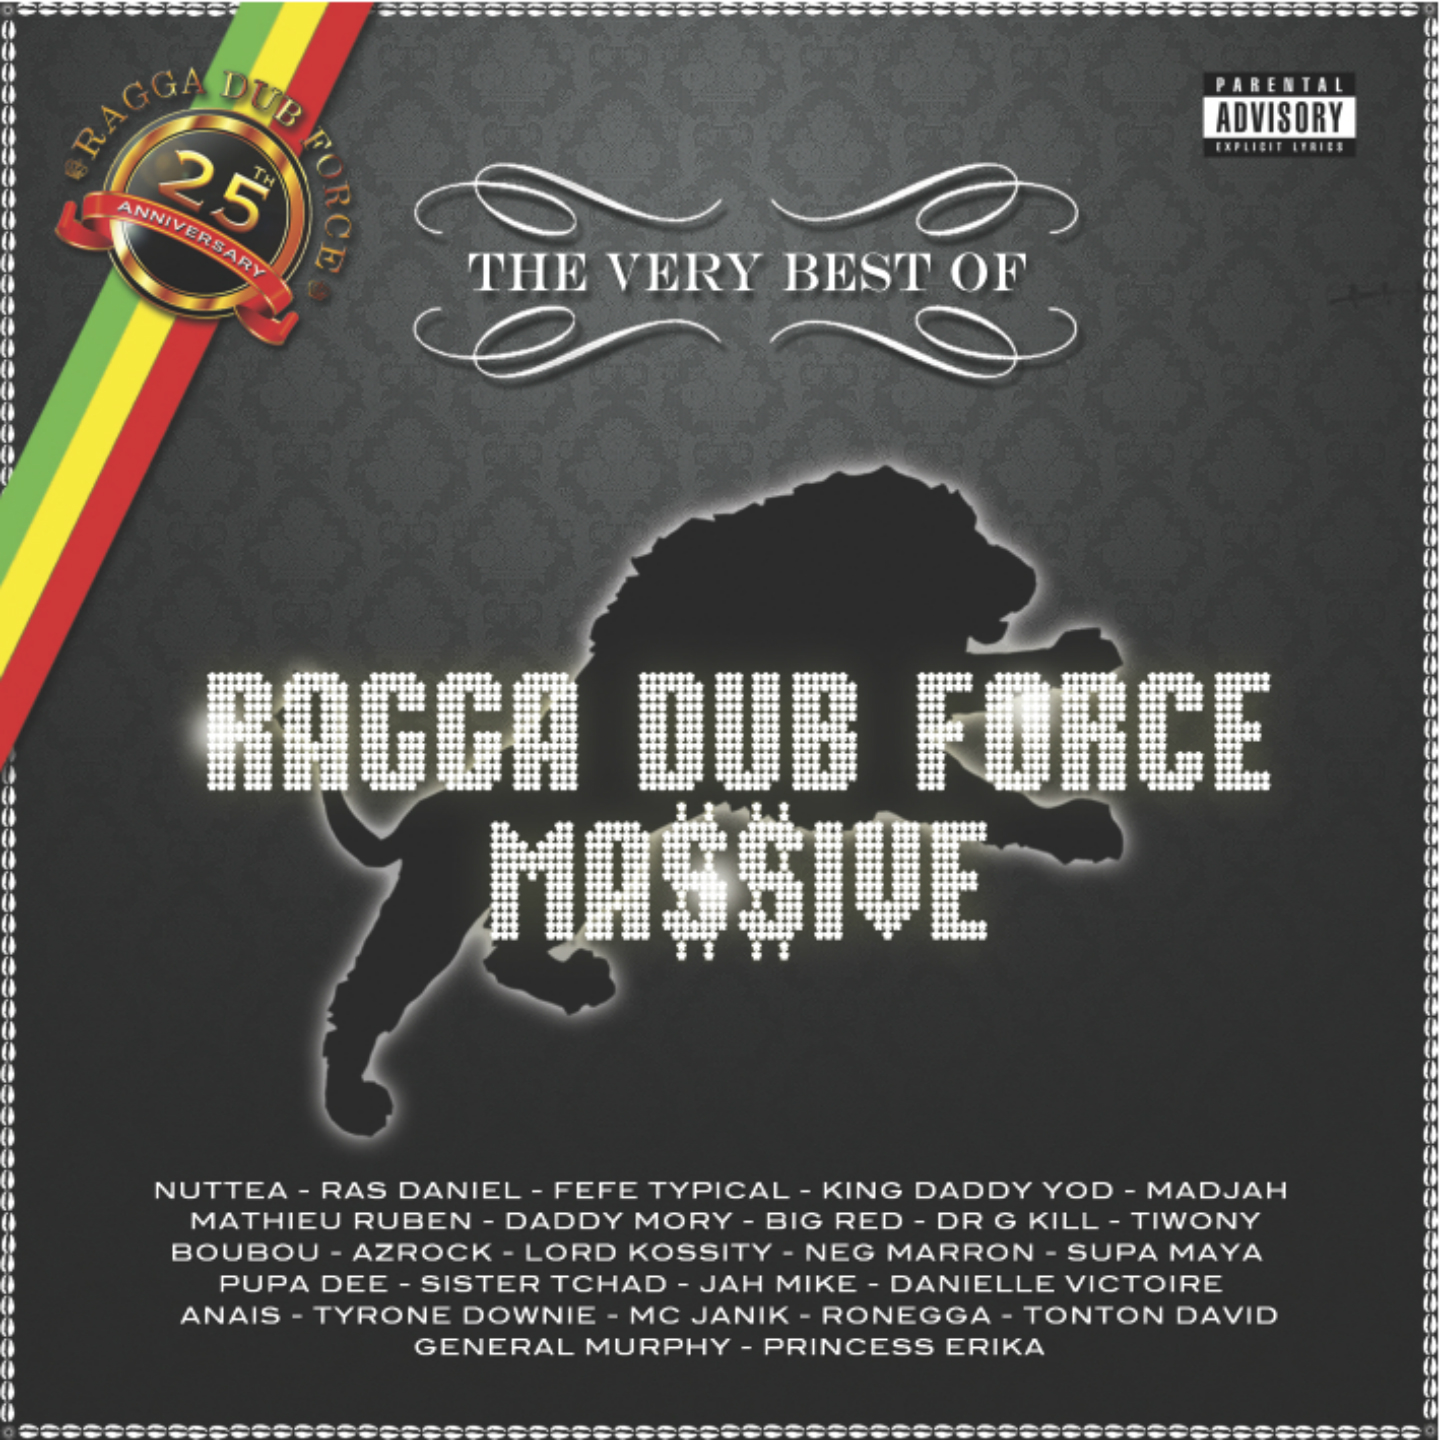 The very best of RDF Massive